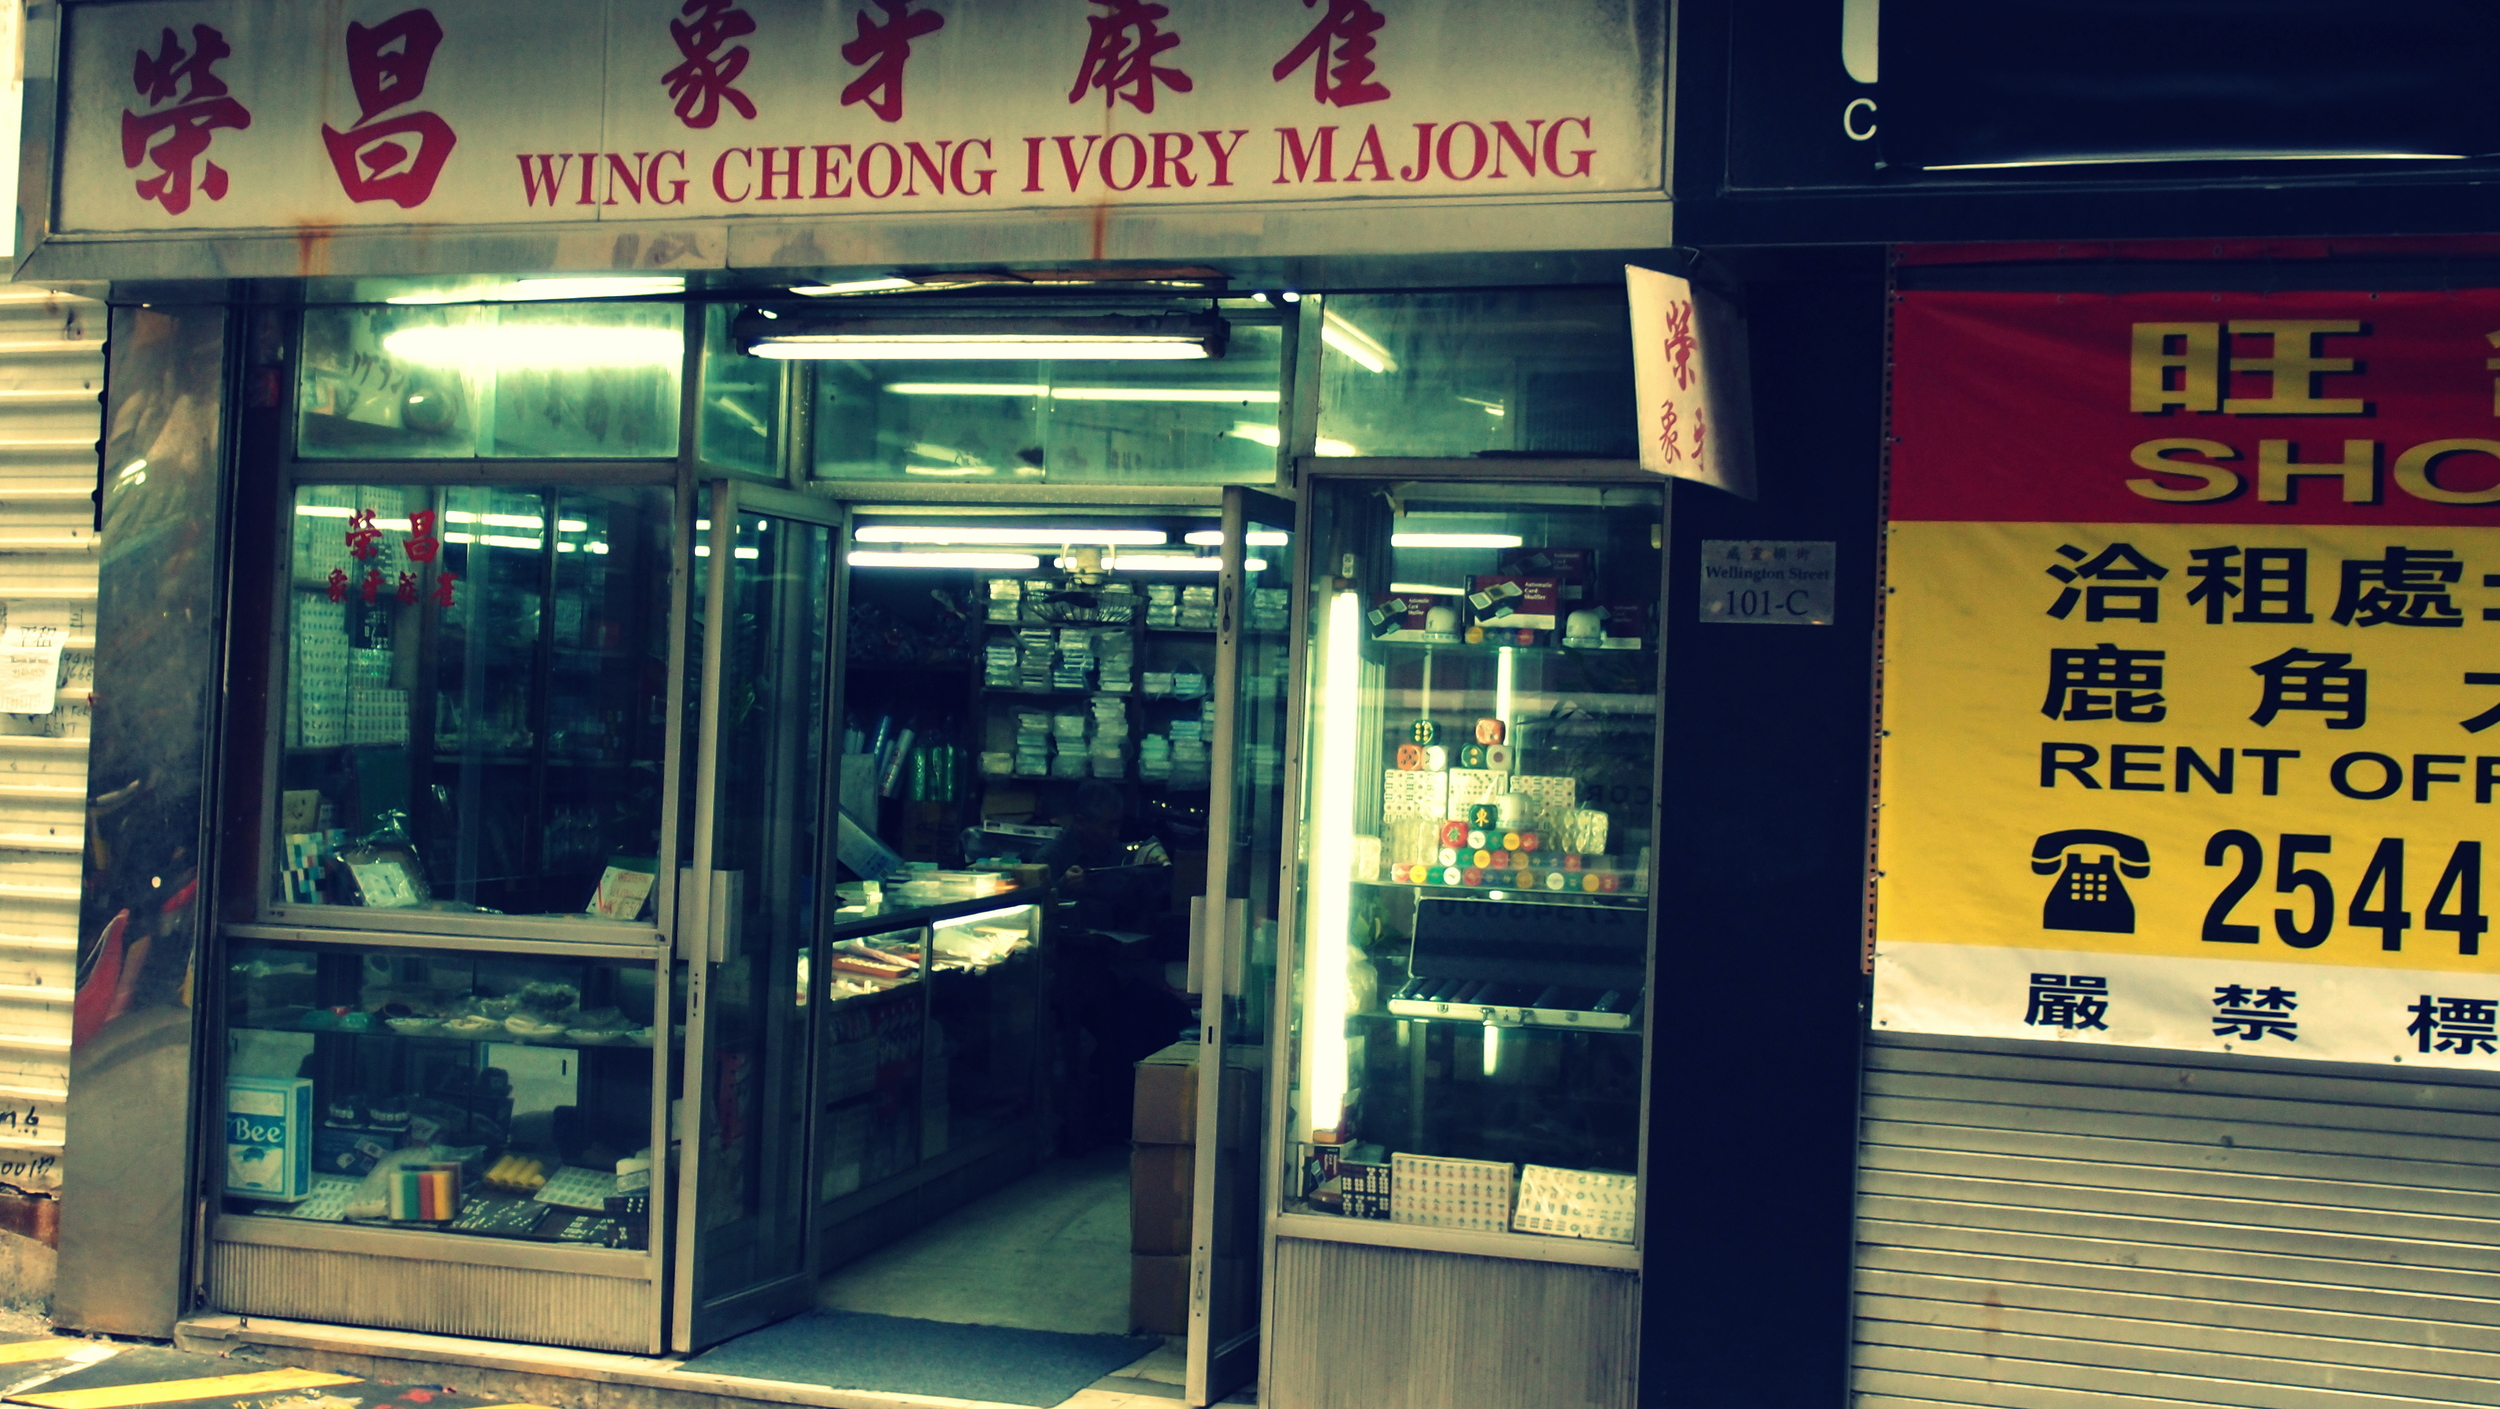 Old shops like this are dying out, they are being replaced by stores by Chow Tai Fook the jewellery company.